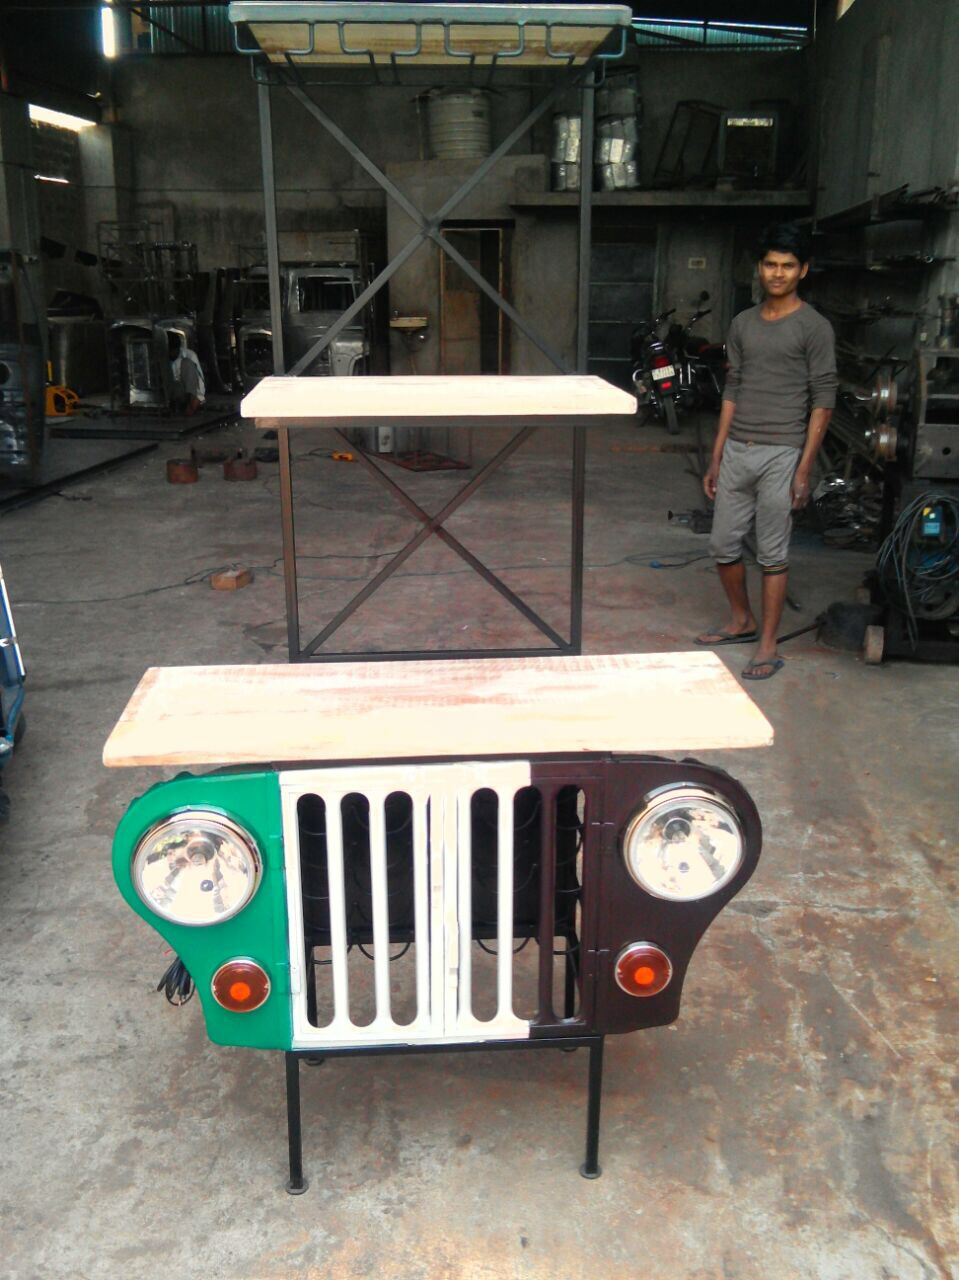 JEEP BEER COUNTER